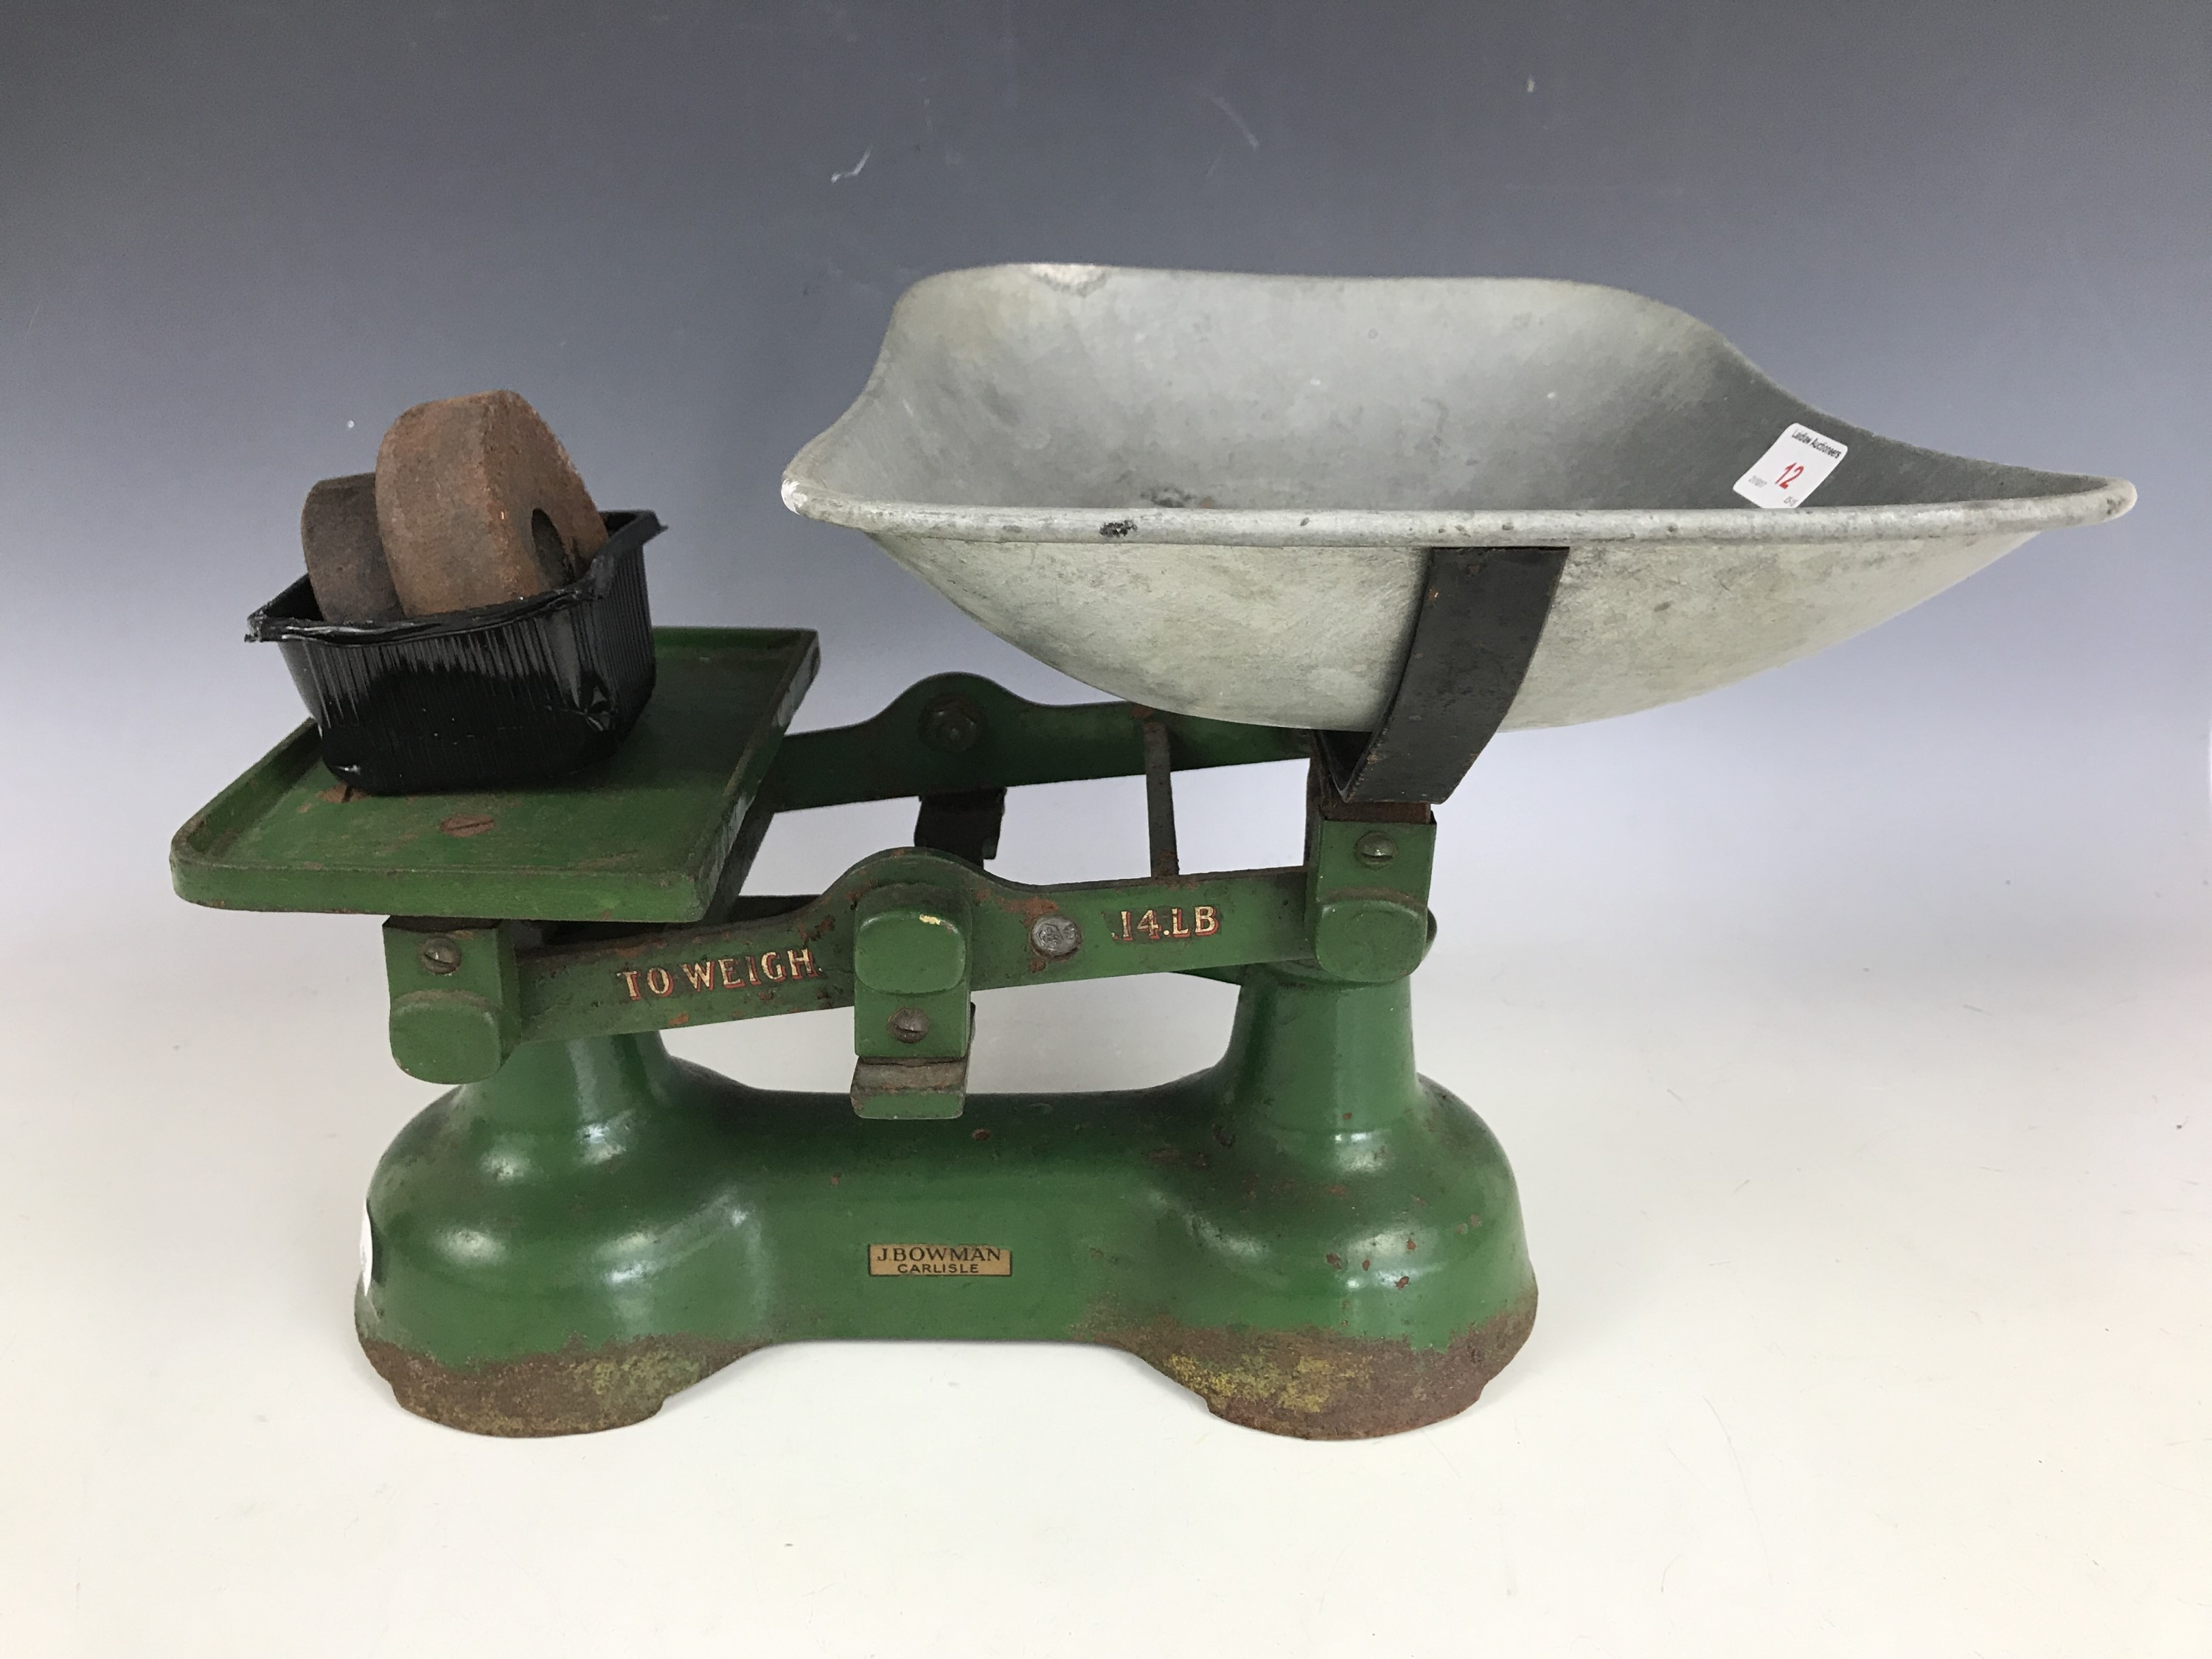 Lot 12 - A vintage set of cast iron kitchen balance scales manufactured by J. Bowman of Carlisle